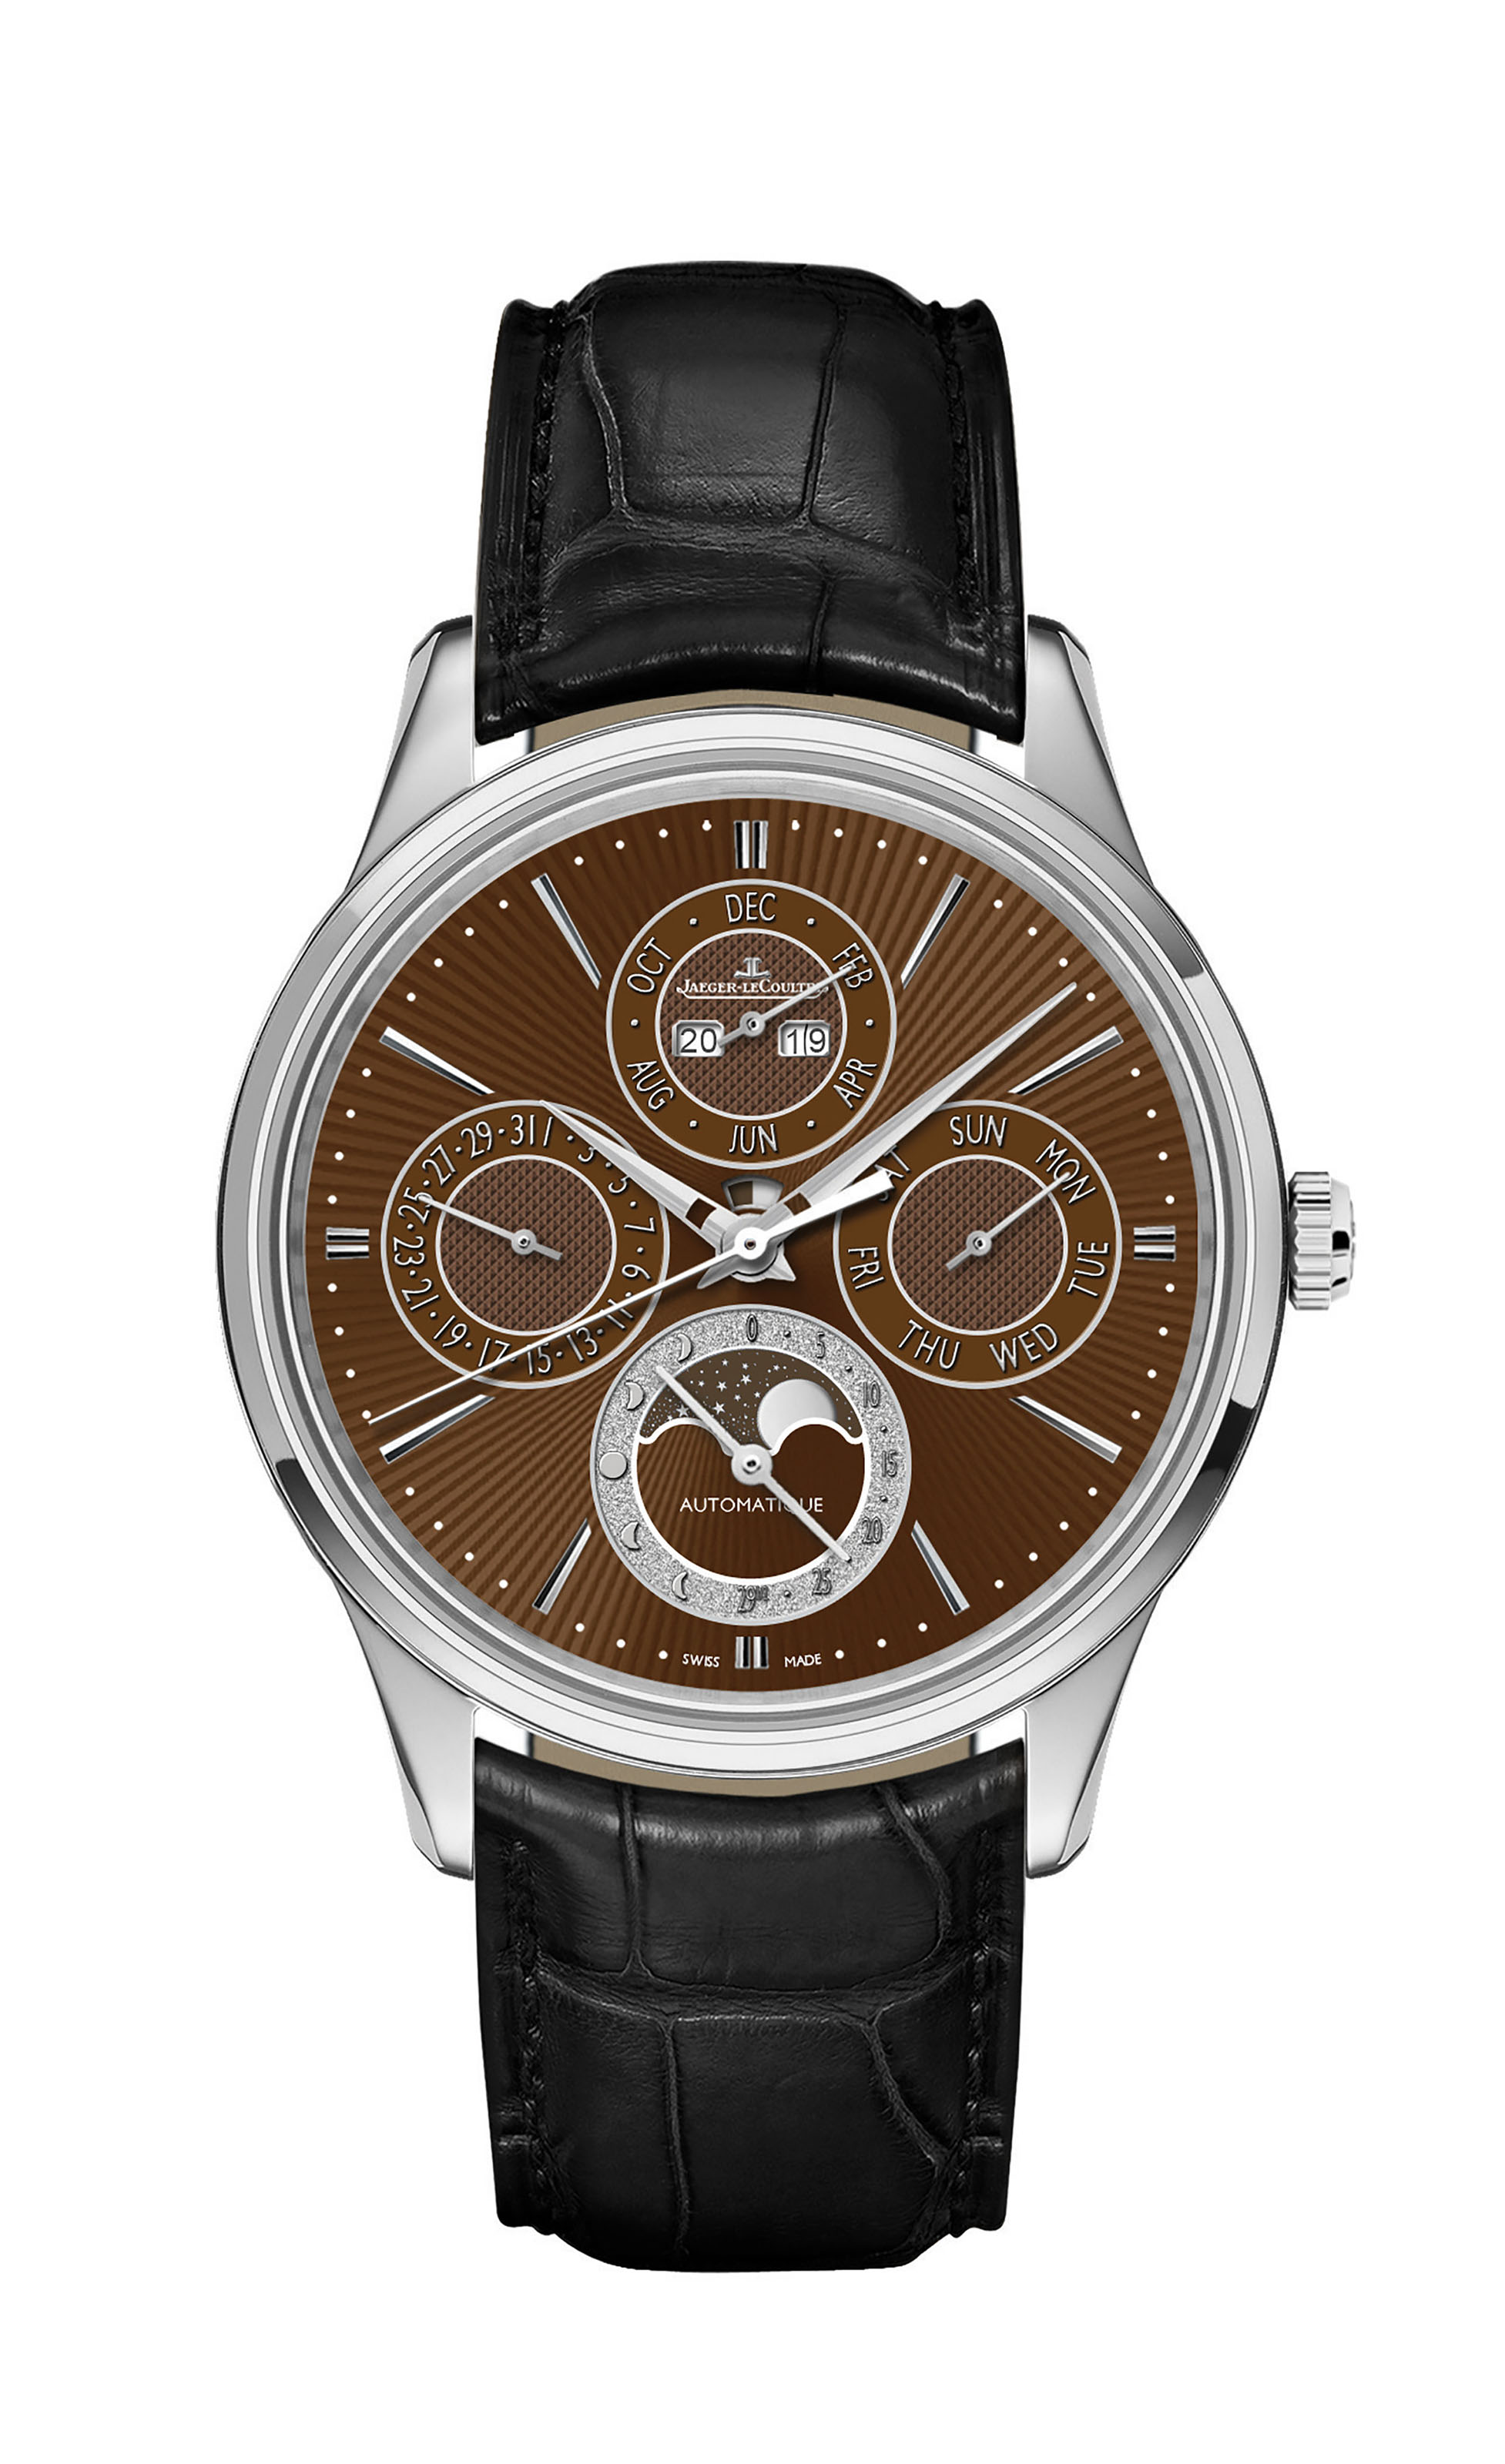 JAEGER-LECOULTRE MASTER UITRA THIN PERPETUAL ENAMEL CHESTNUT  Presenting an exceptional work from Jaeger-LeCoultre's Manufacture, where the codes of the Master Ultra Thin collection have been reinterpreted by the Métiers Rares®workshop, to create a unique watch: the Master Ultra Thin Perpetual Enamel Chestnut.